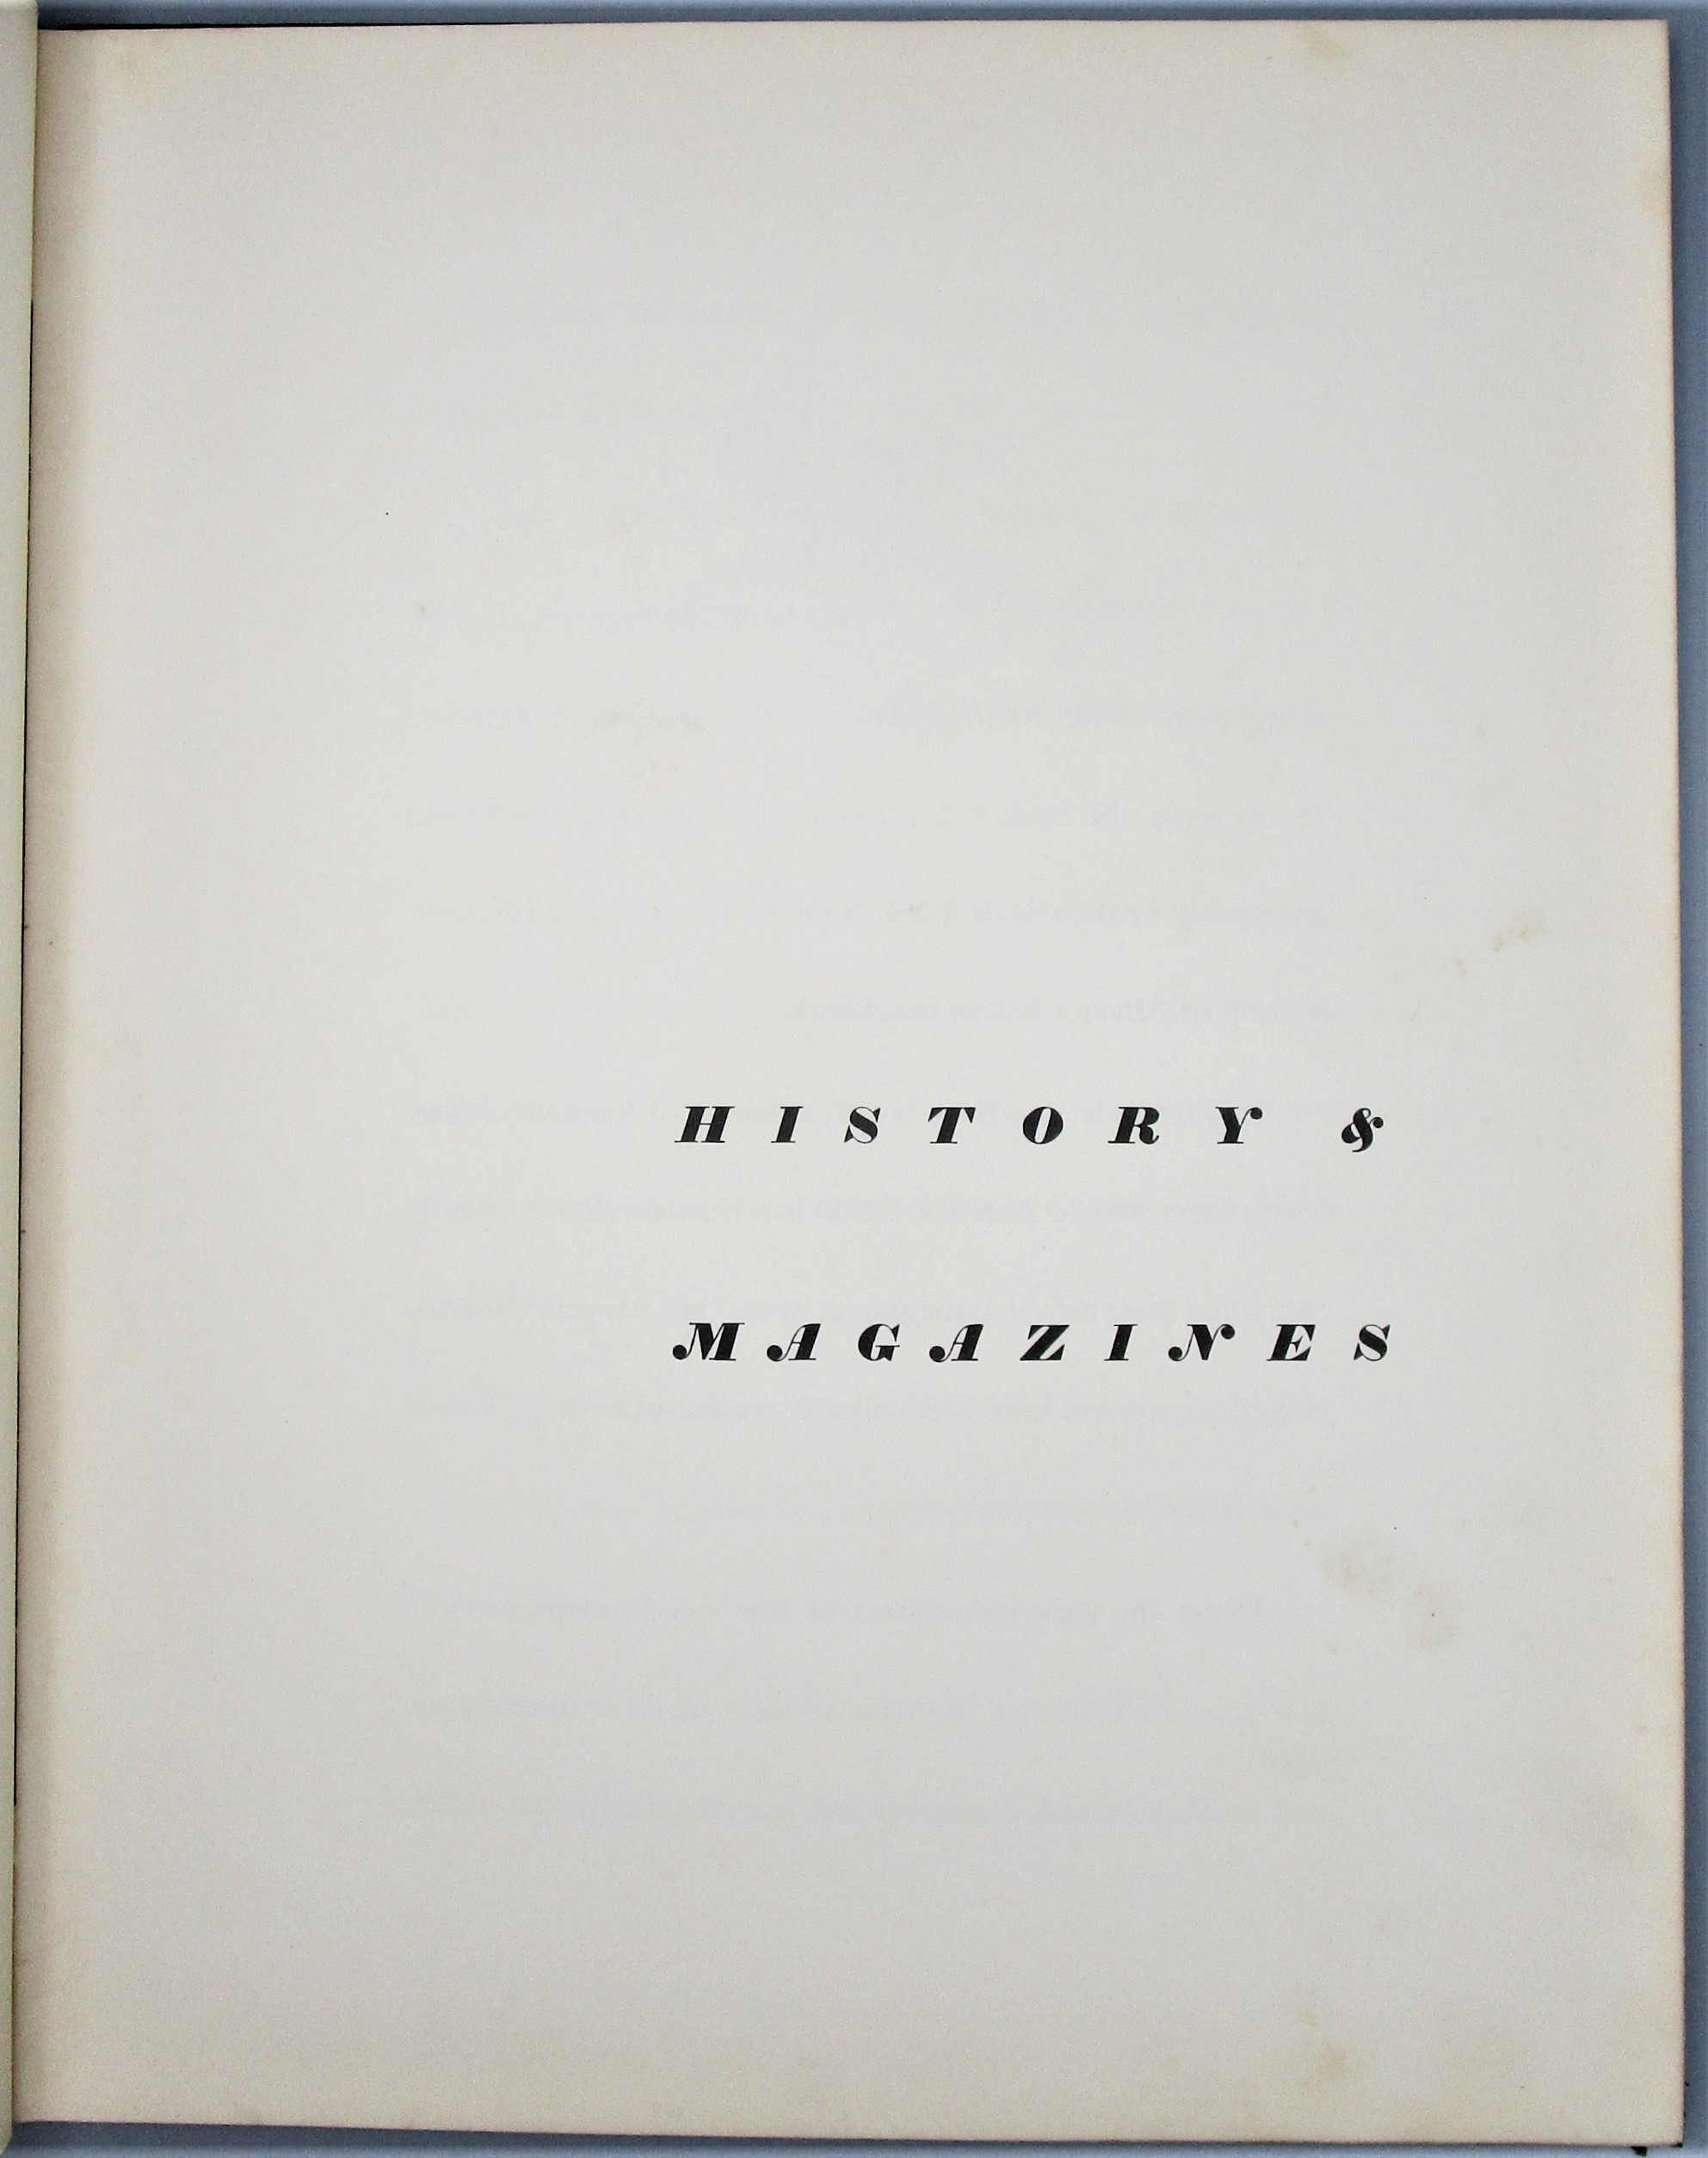 HISTORY & MAGAZINES - 1941 [Signed Limited Edition]